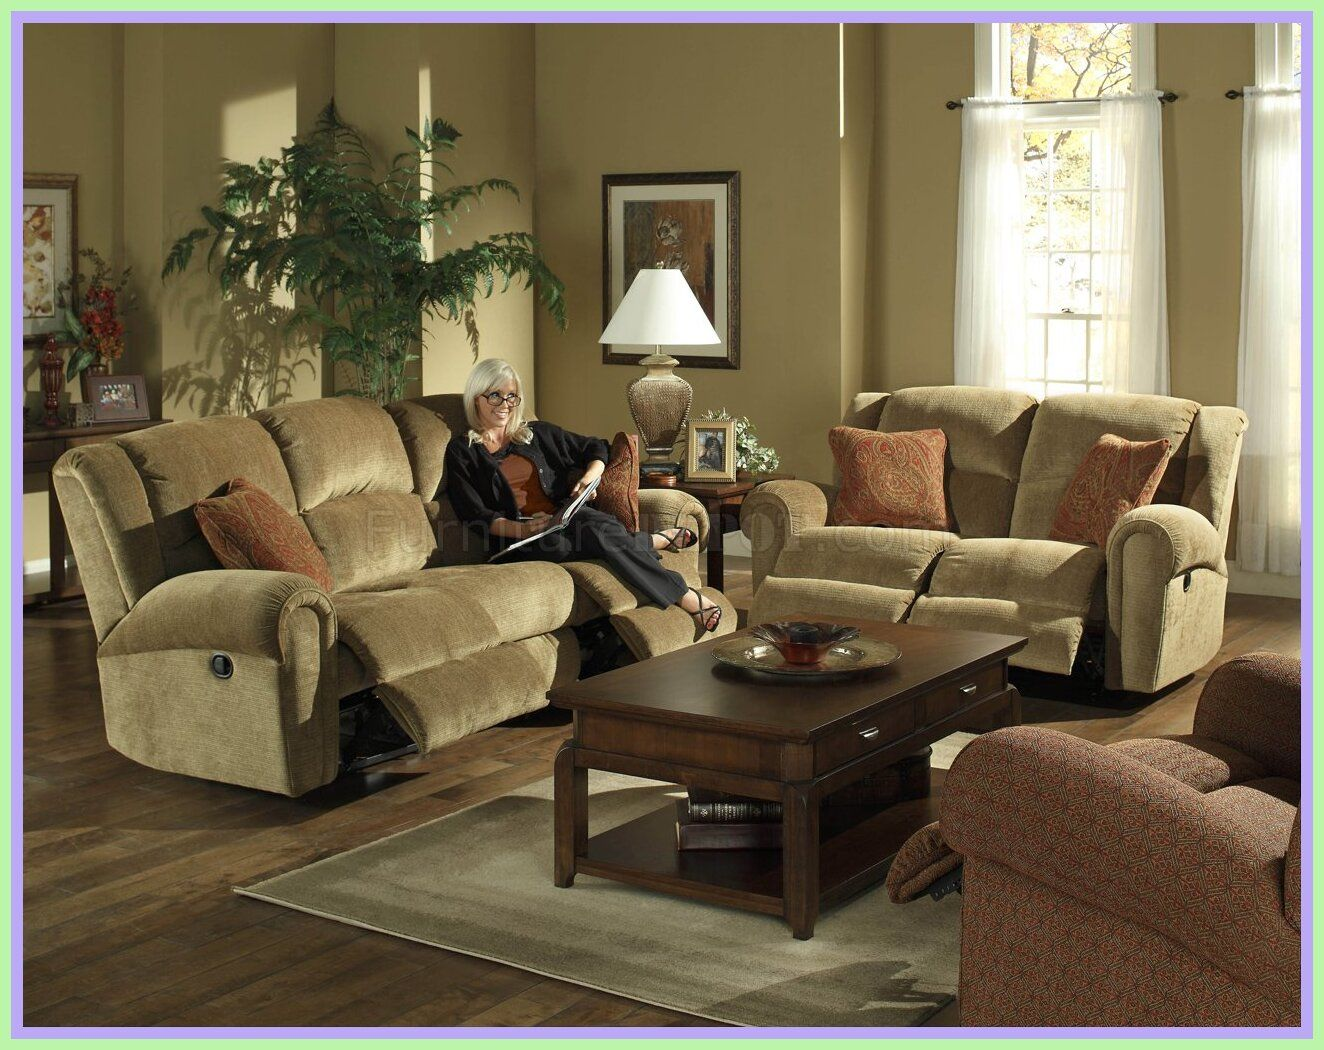 67 Reference Of Reclining Fabric Sofa Sets In 2020 Sofa And Loveseat Set Sofa Set Red Curtains Bedroom